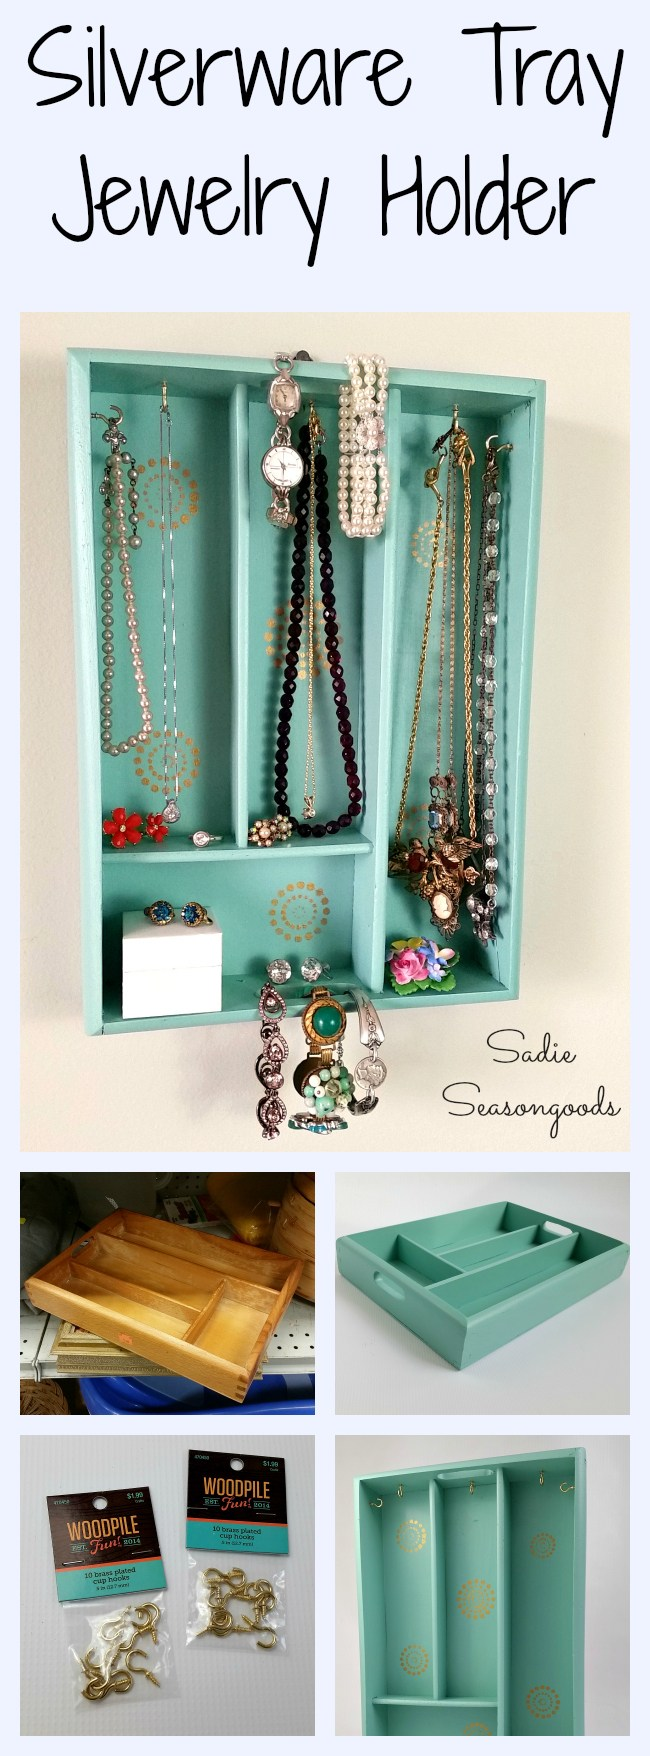 How To Make A Silverware Box Into Craft Display